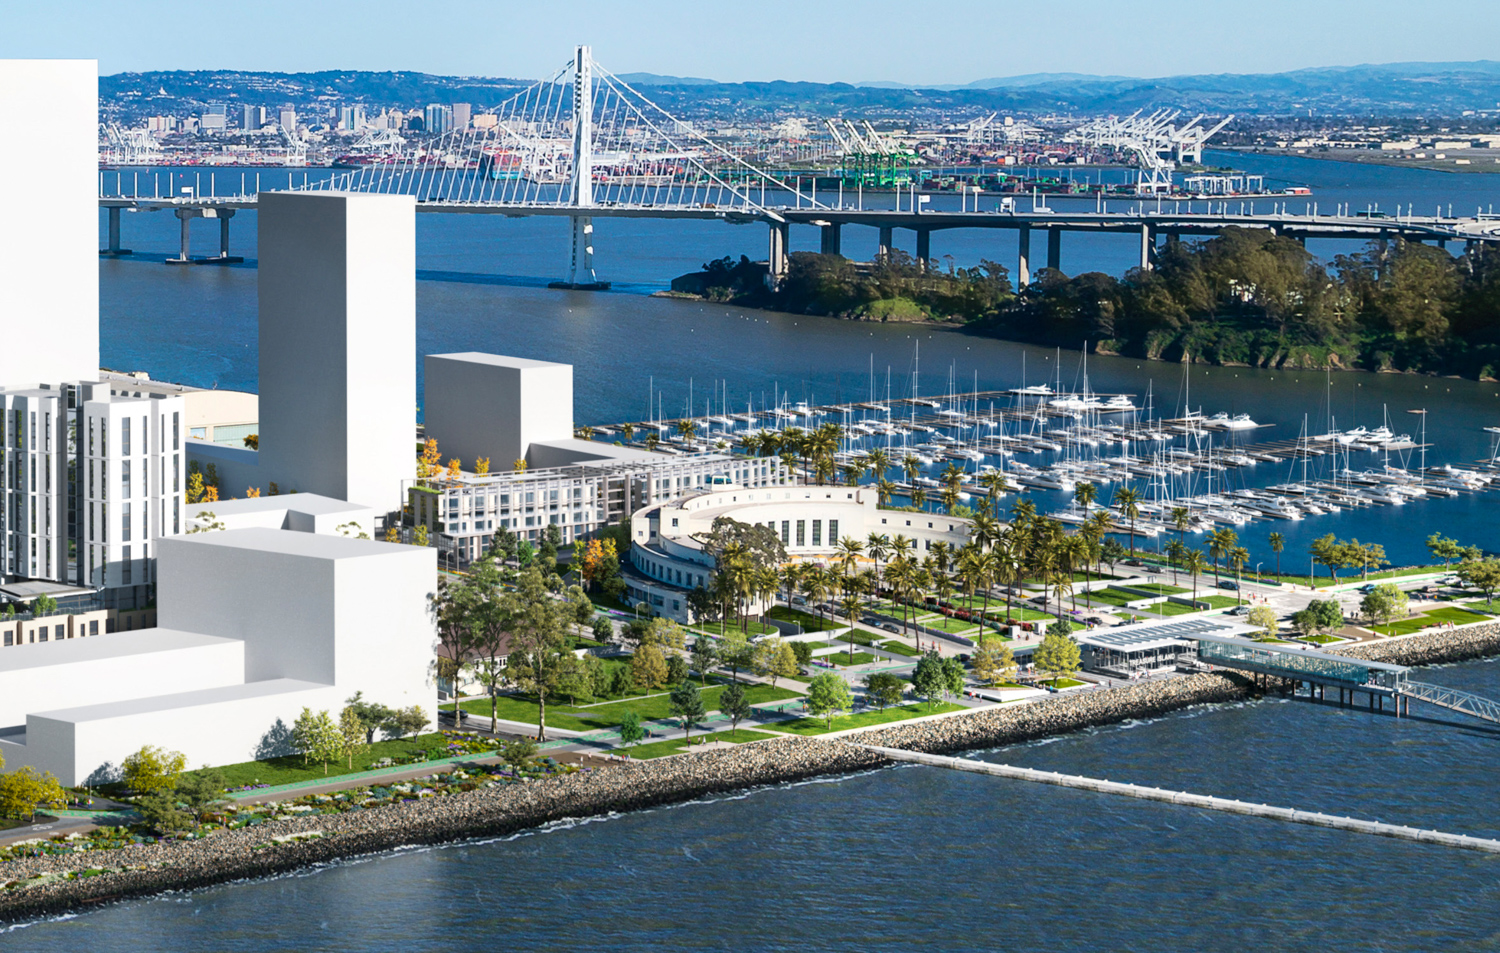 Treasure Island Parcel B beside the Administration Building with the Bay Bridge in the background, rendering by Steelblue